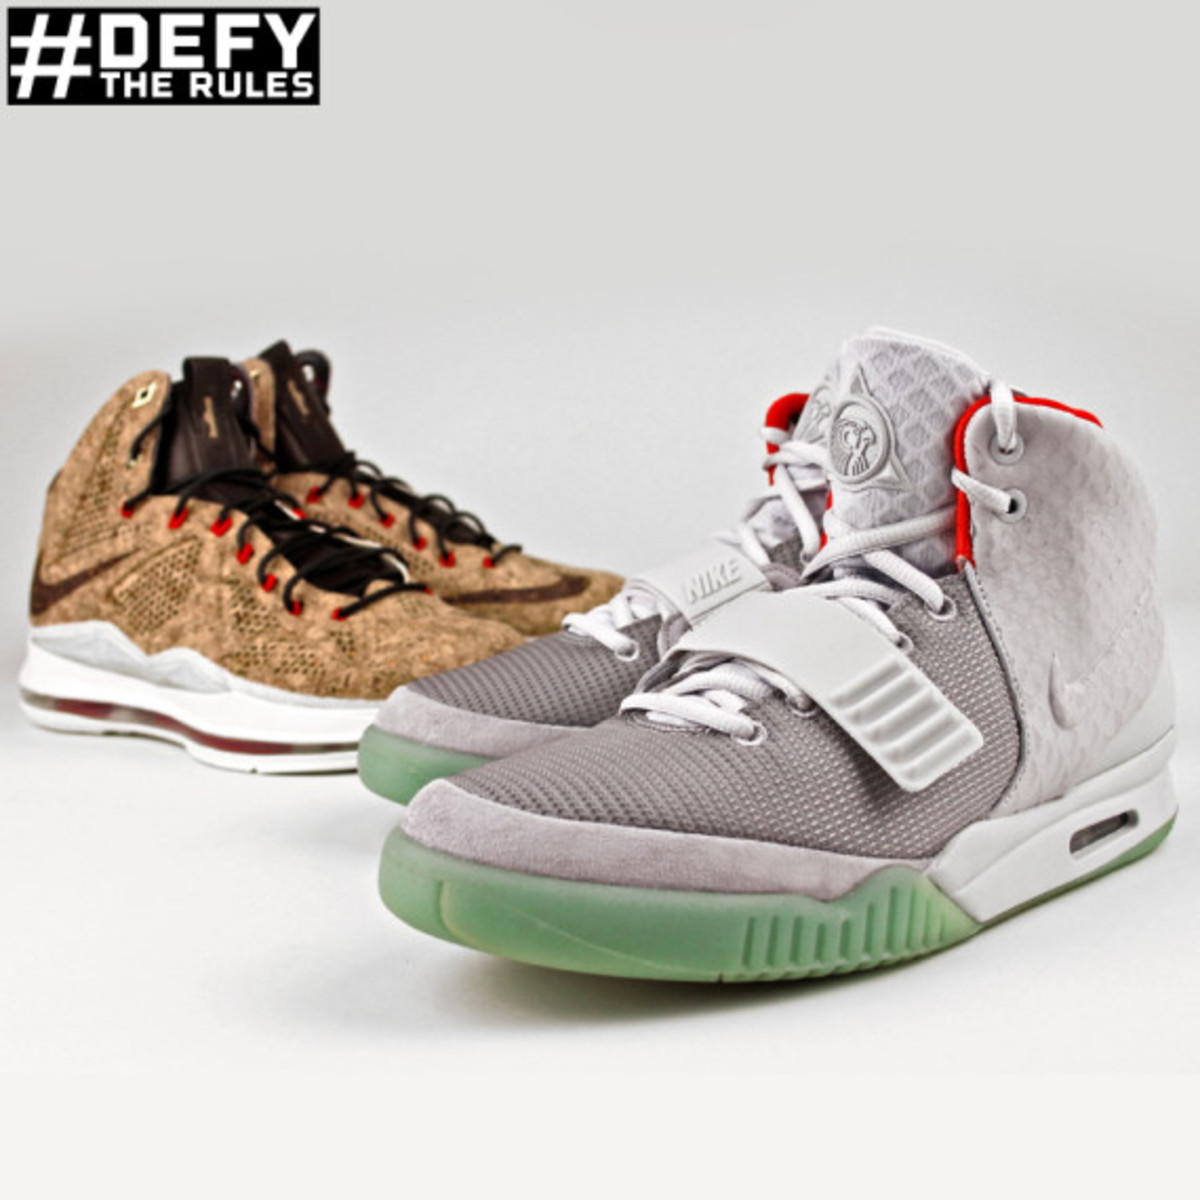 villa-2013-refresh-hunt-featuring-corks-and-yeezys-02